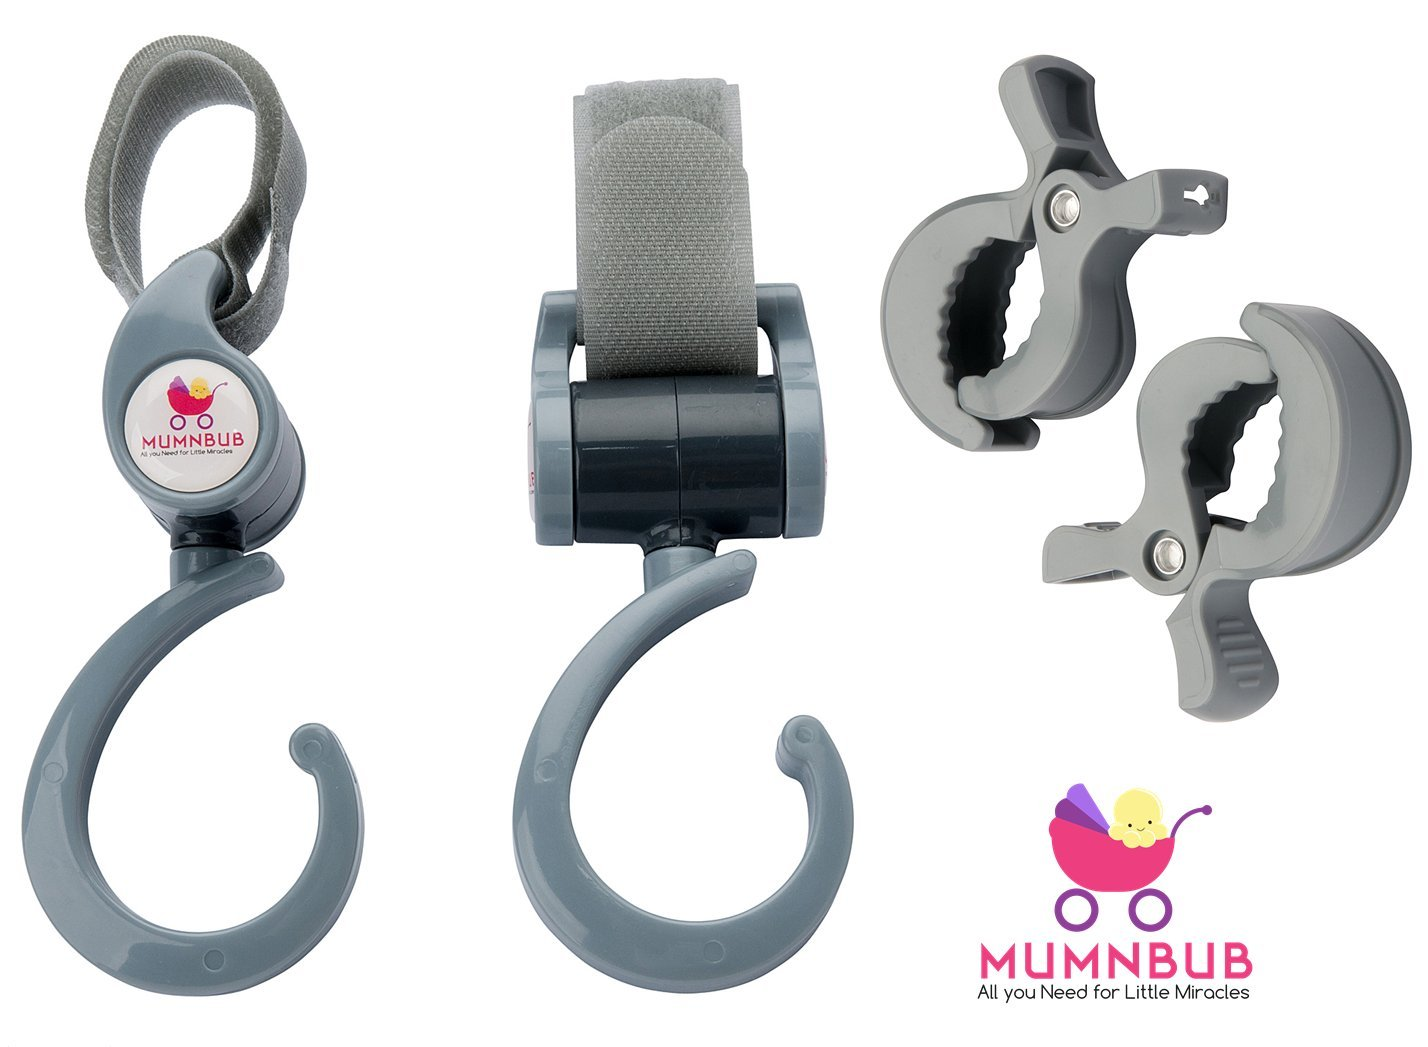 MumnBub Stroller Hook - 2 Pack (Grey) Multi-Purpose Heavy Duty Buggy Clips for Mommy - Universal Fit Perfect Pram Accessories for Hanging Diaper Bag, Shopping Bag, Groceries -Includes 2 Stroller Pegs by MumnBub